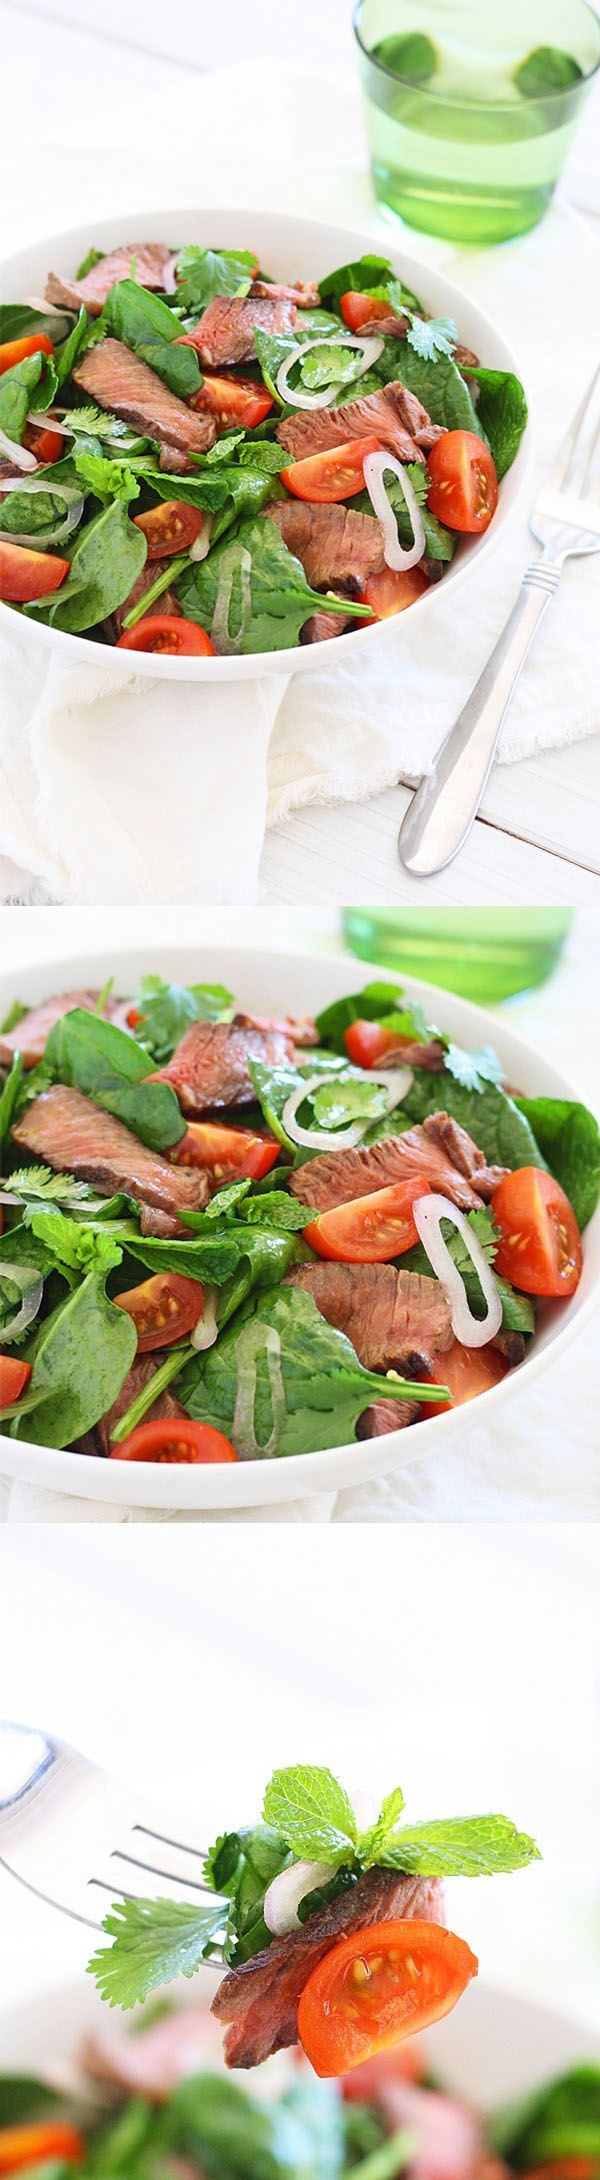 Thai Beef Salad - best homemade salad with Thai marinated beef and dressing. Healthy recipe that you can make at home | rasamalaysia.com